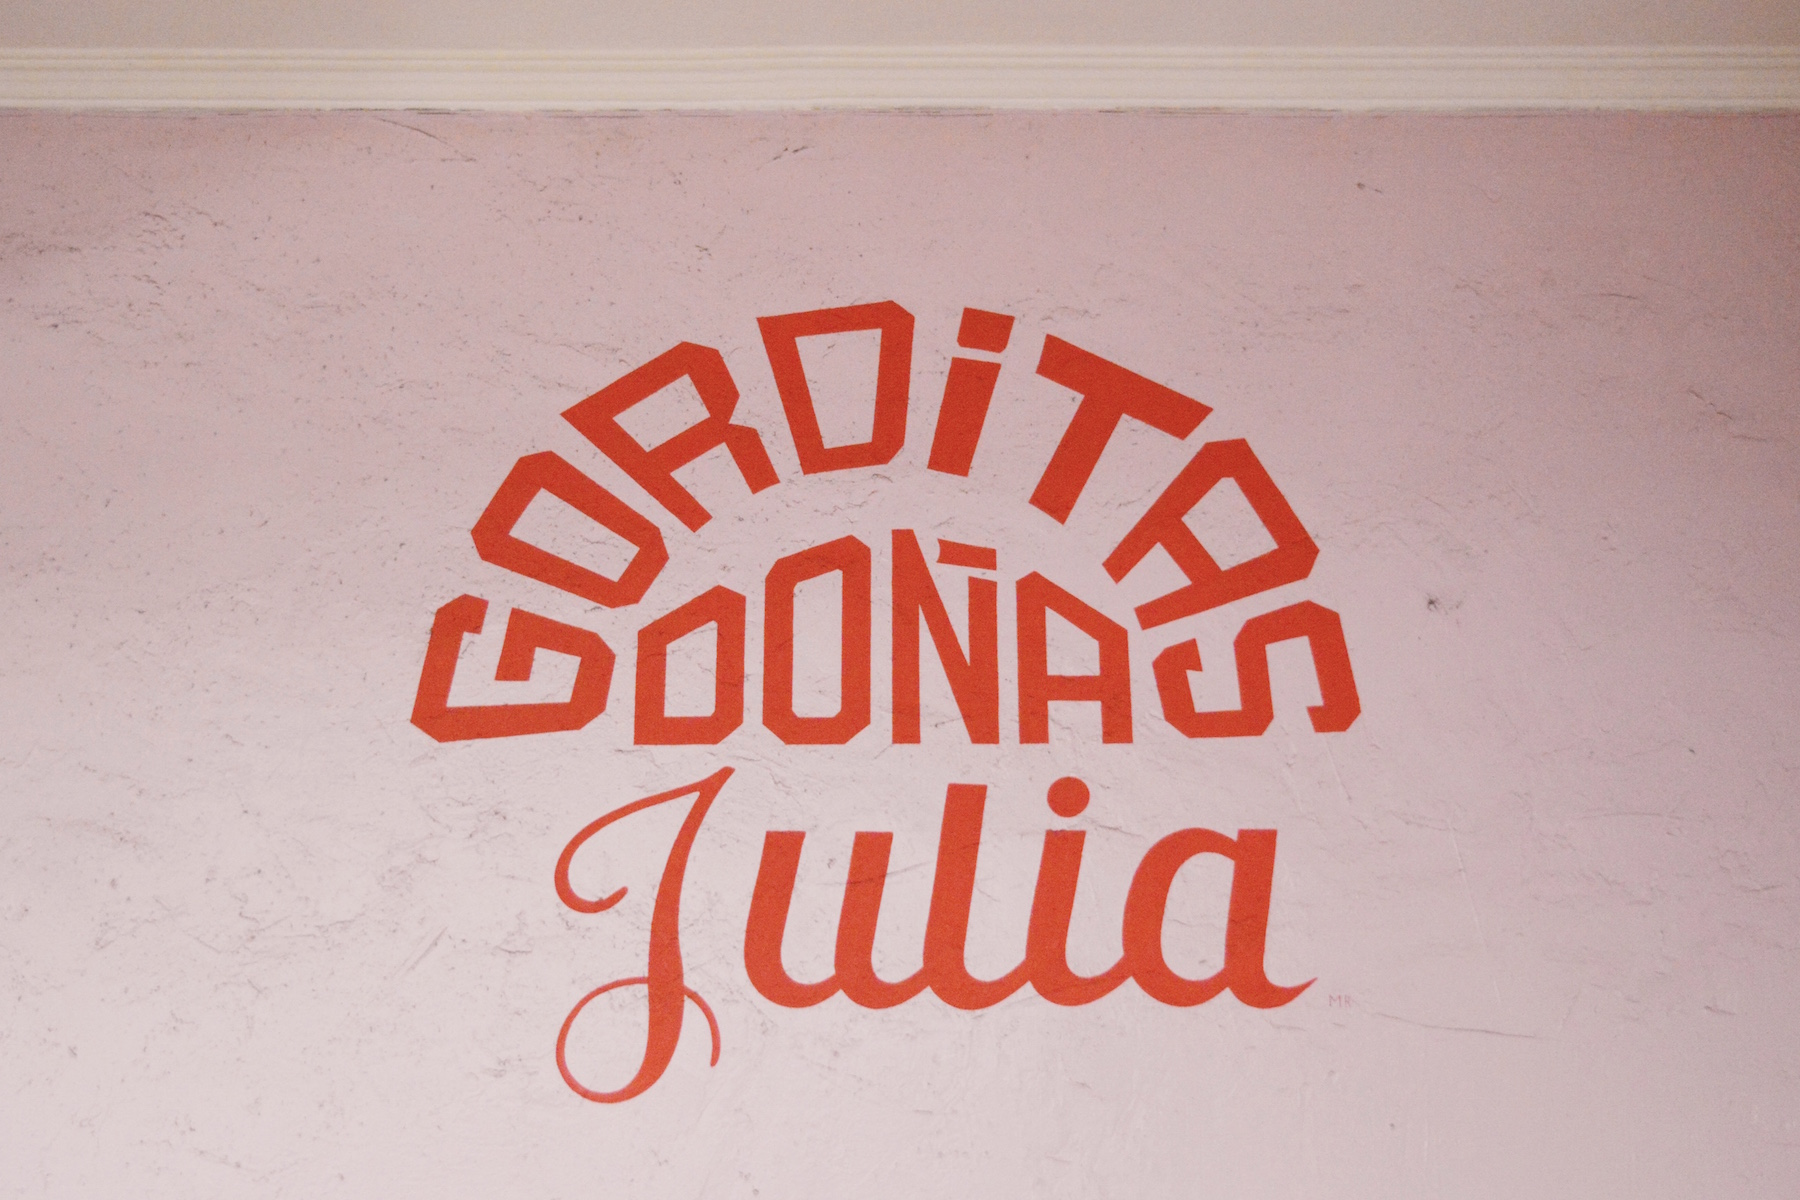 Awesome typography at local restaurant,  Gorditas Doña Julia